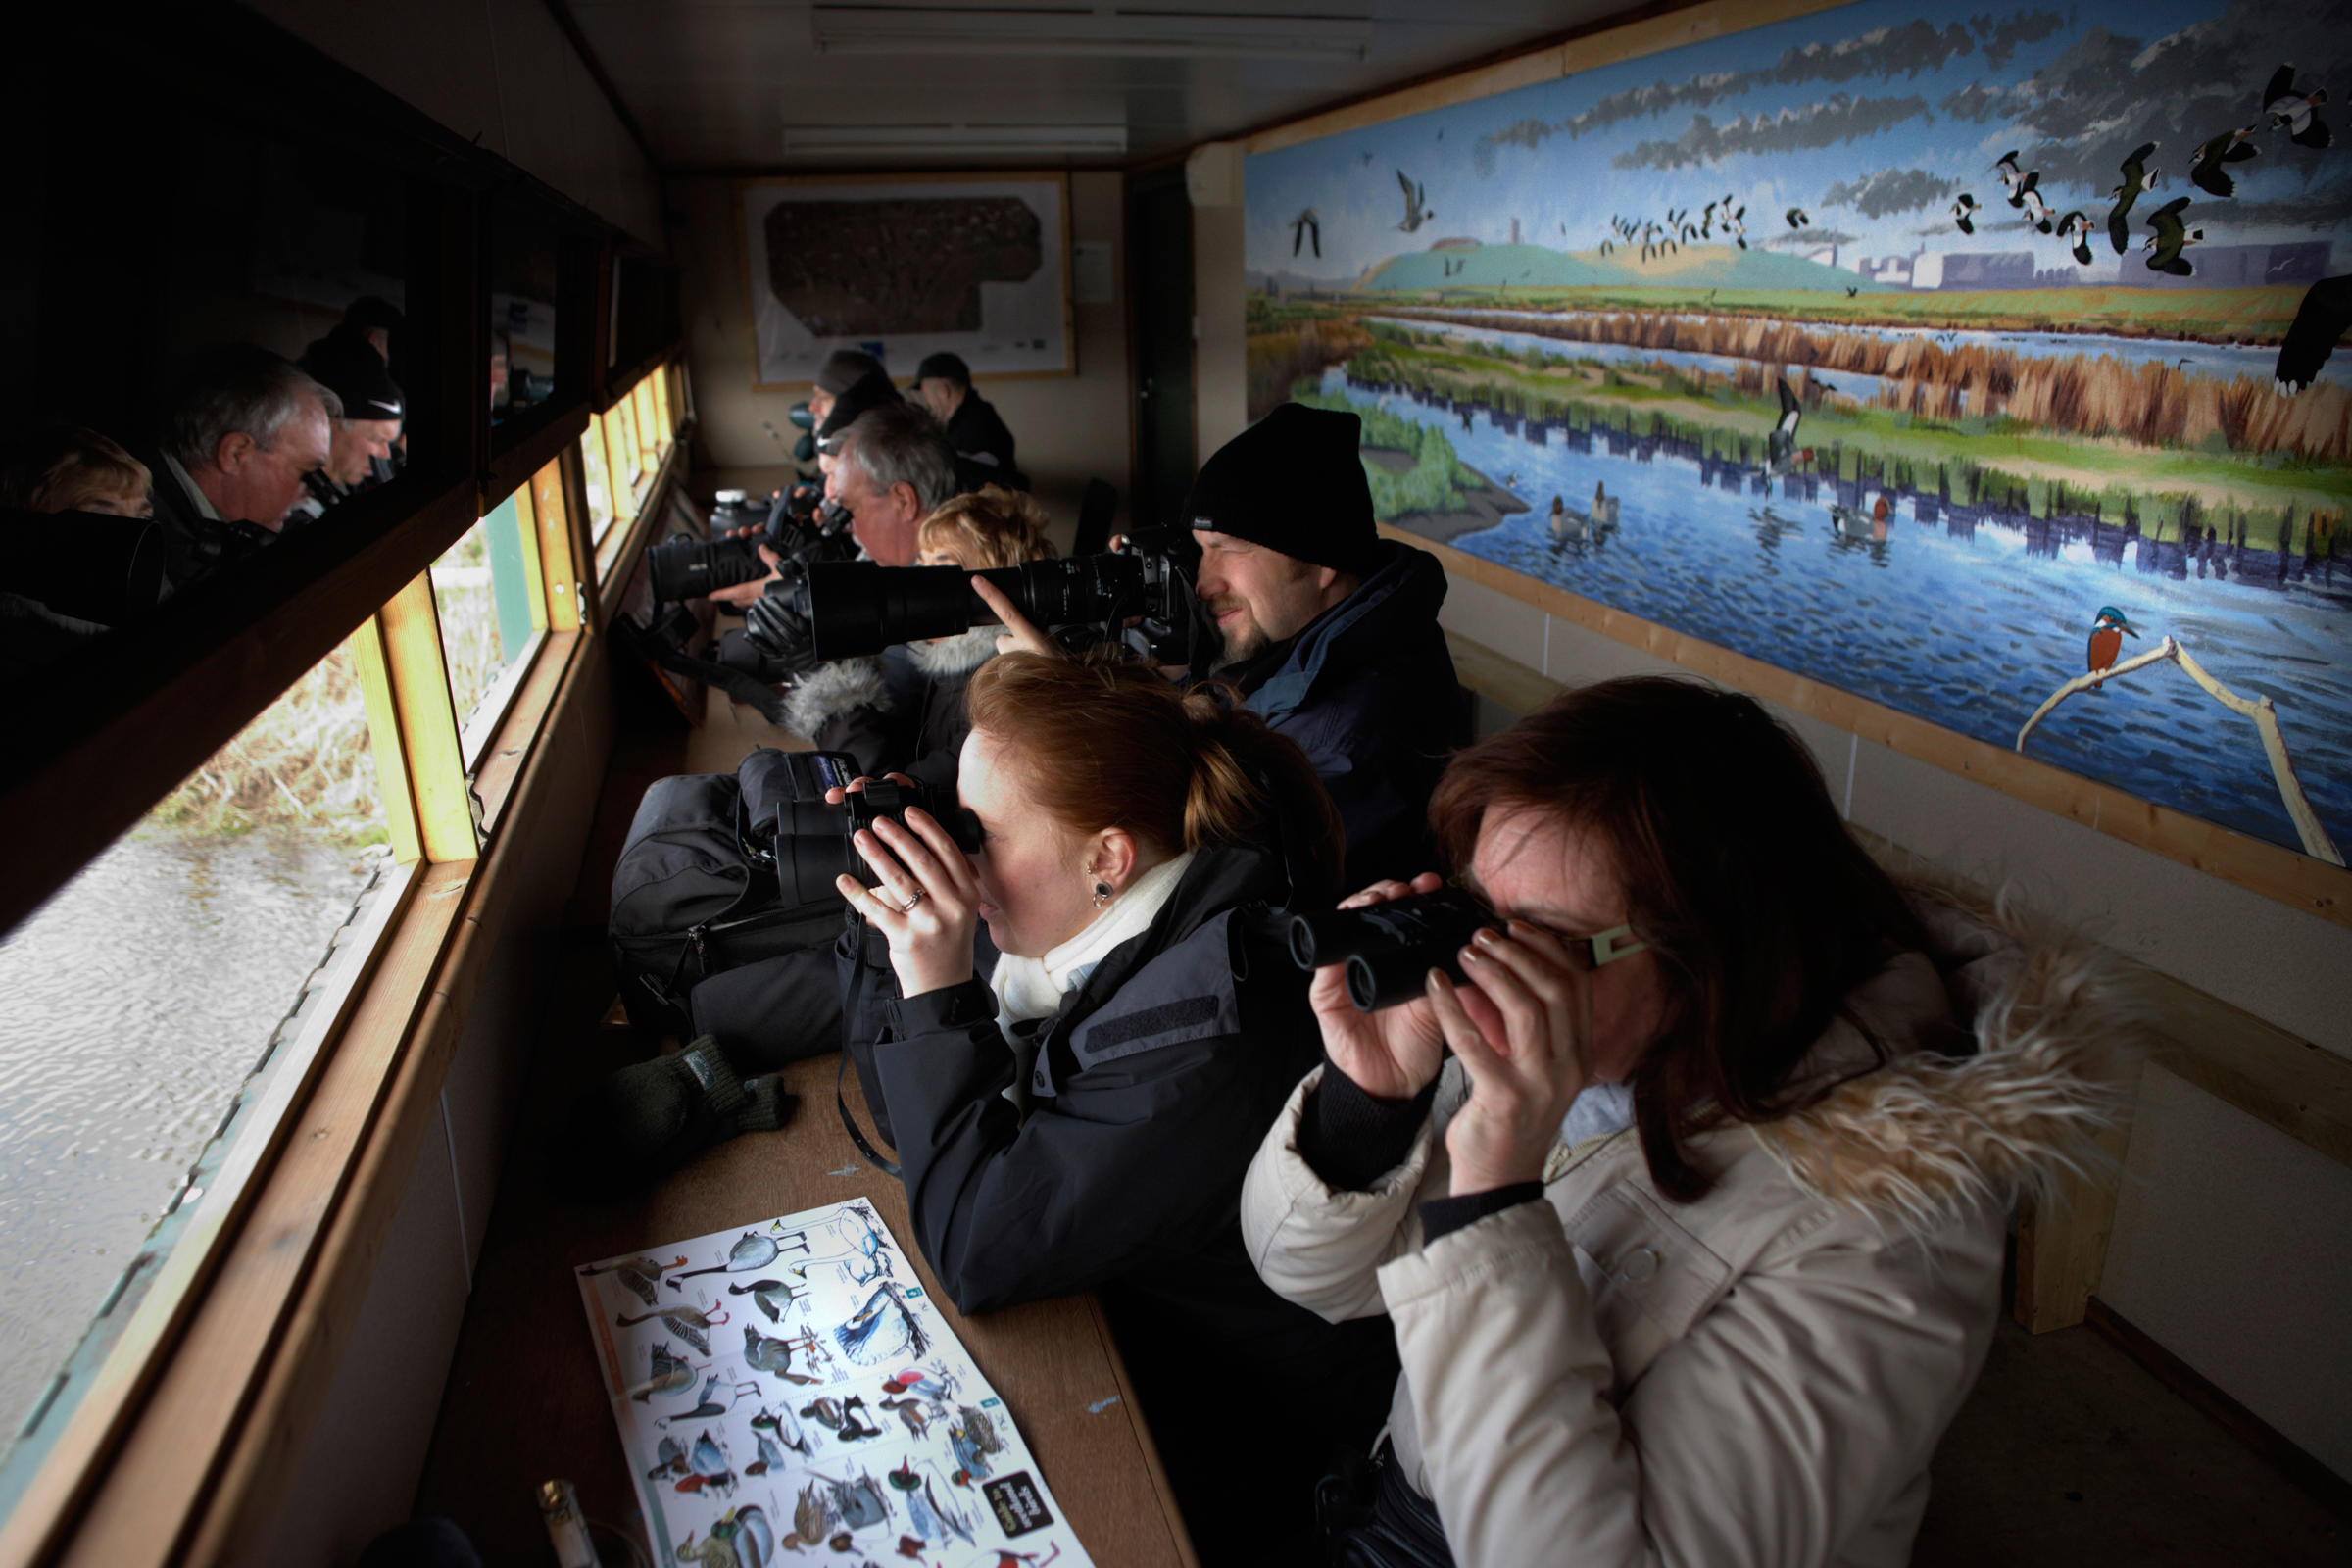 In a blind at a Royal Society for Protection of Birds (RSPB) reserve at Rainham Marshes, Essex. England. Richard Baker/In Pictures/Corbis